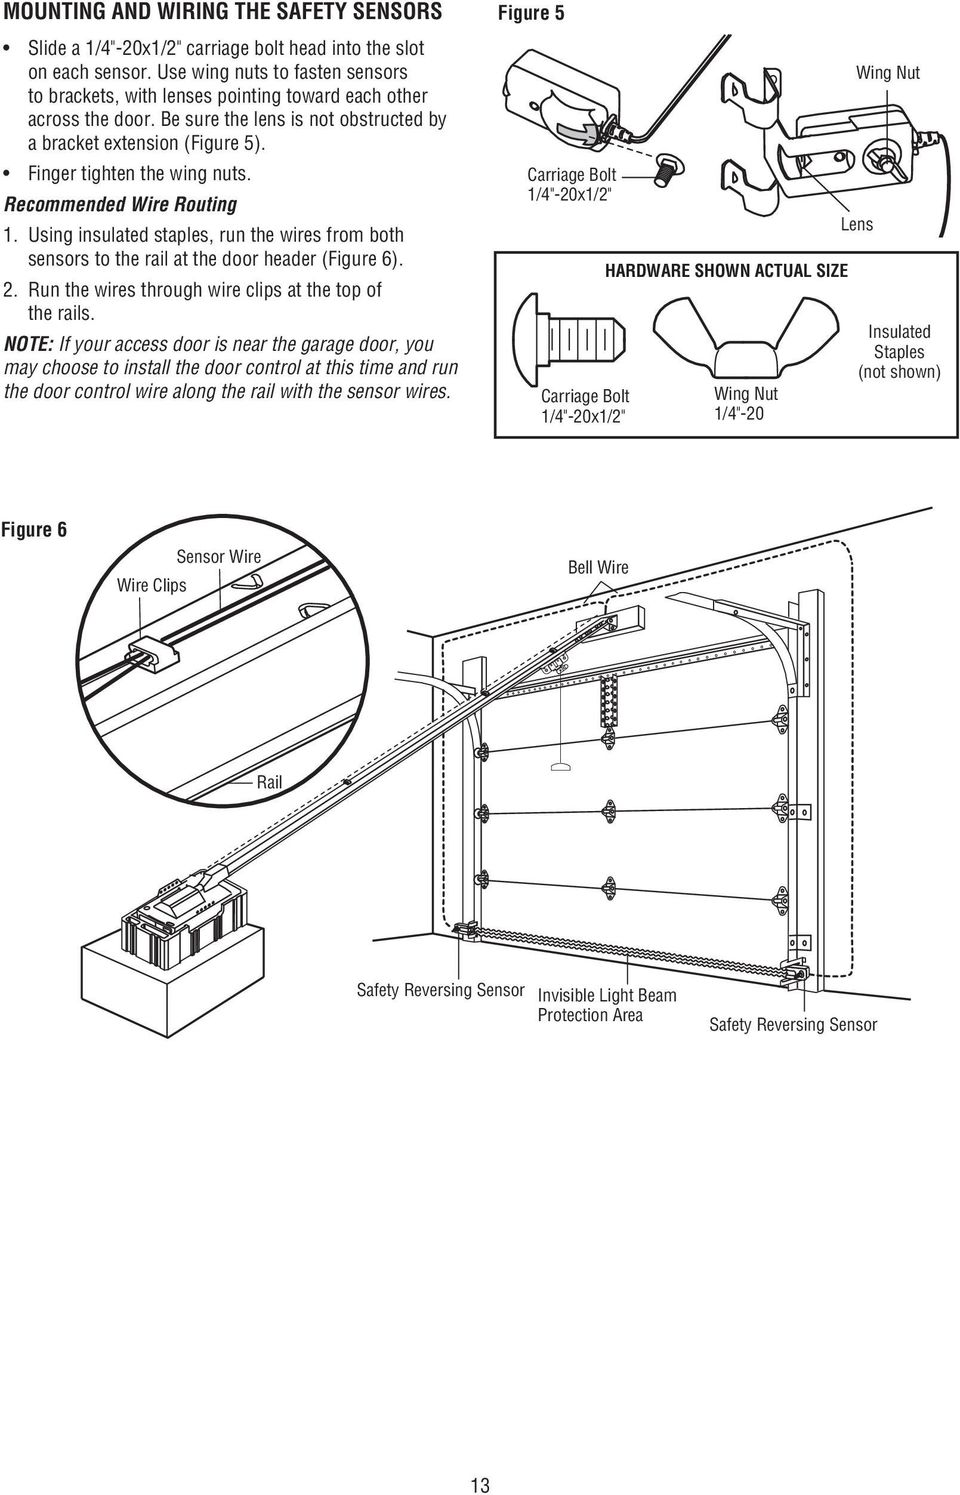 Recommended Wire Routing 1. Using insulated staples, run the wires from both sensors to the rail at the door header (Figure 6). 2. Run the wires through wire clips at the top of the rails.